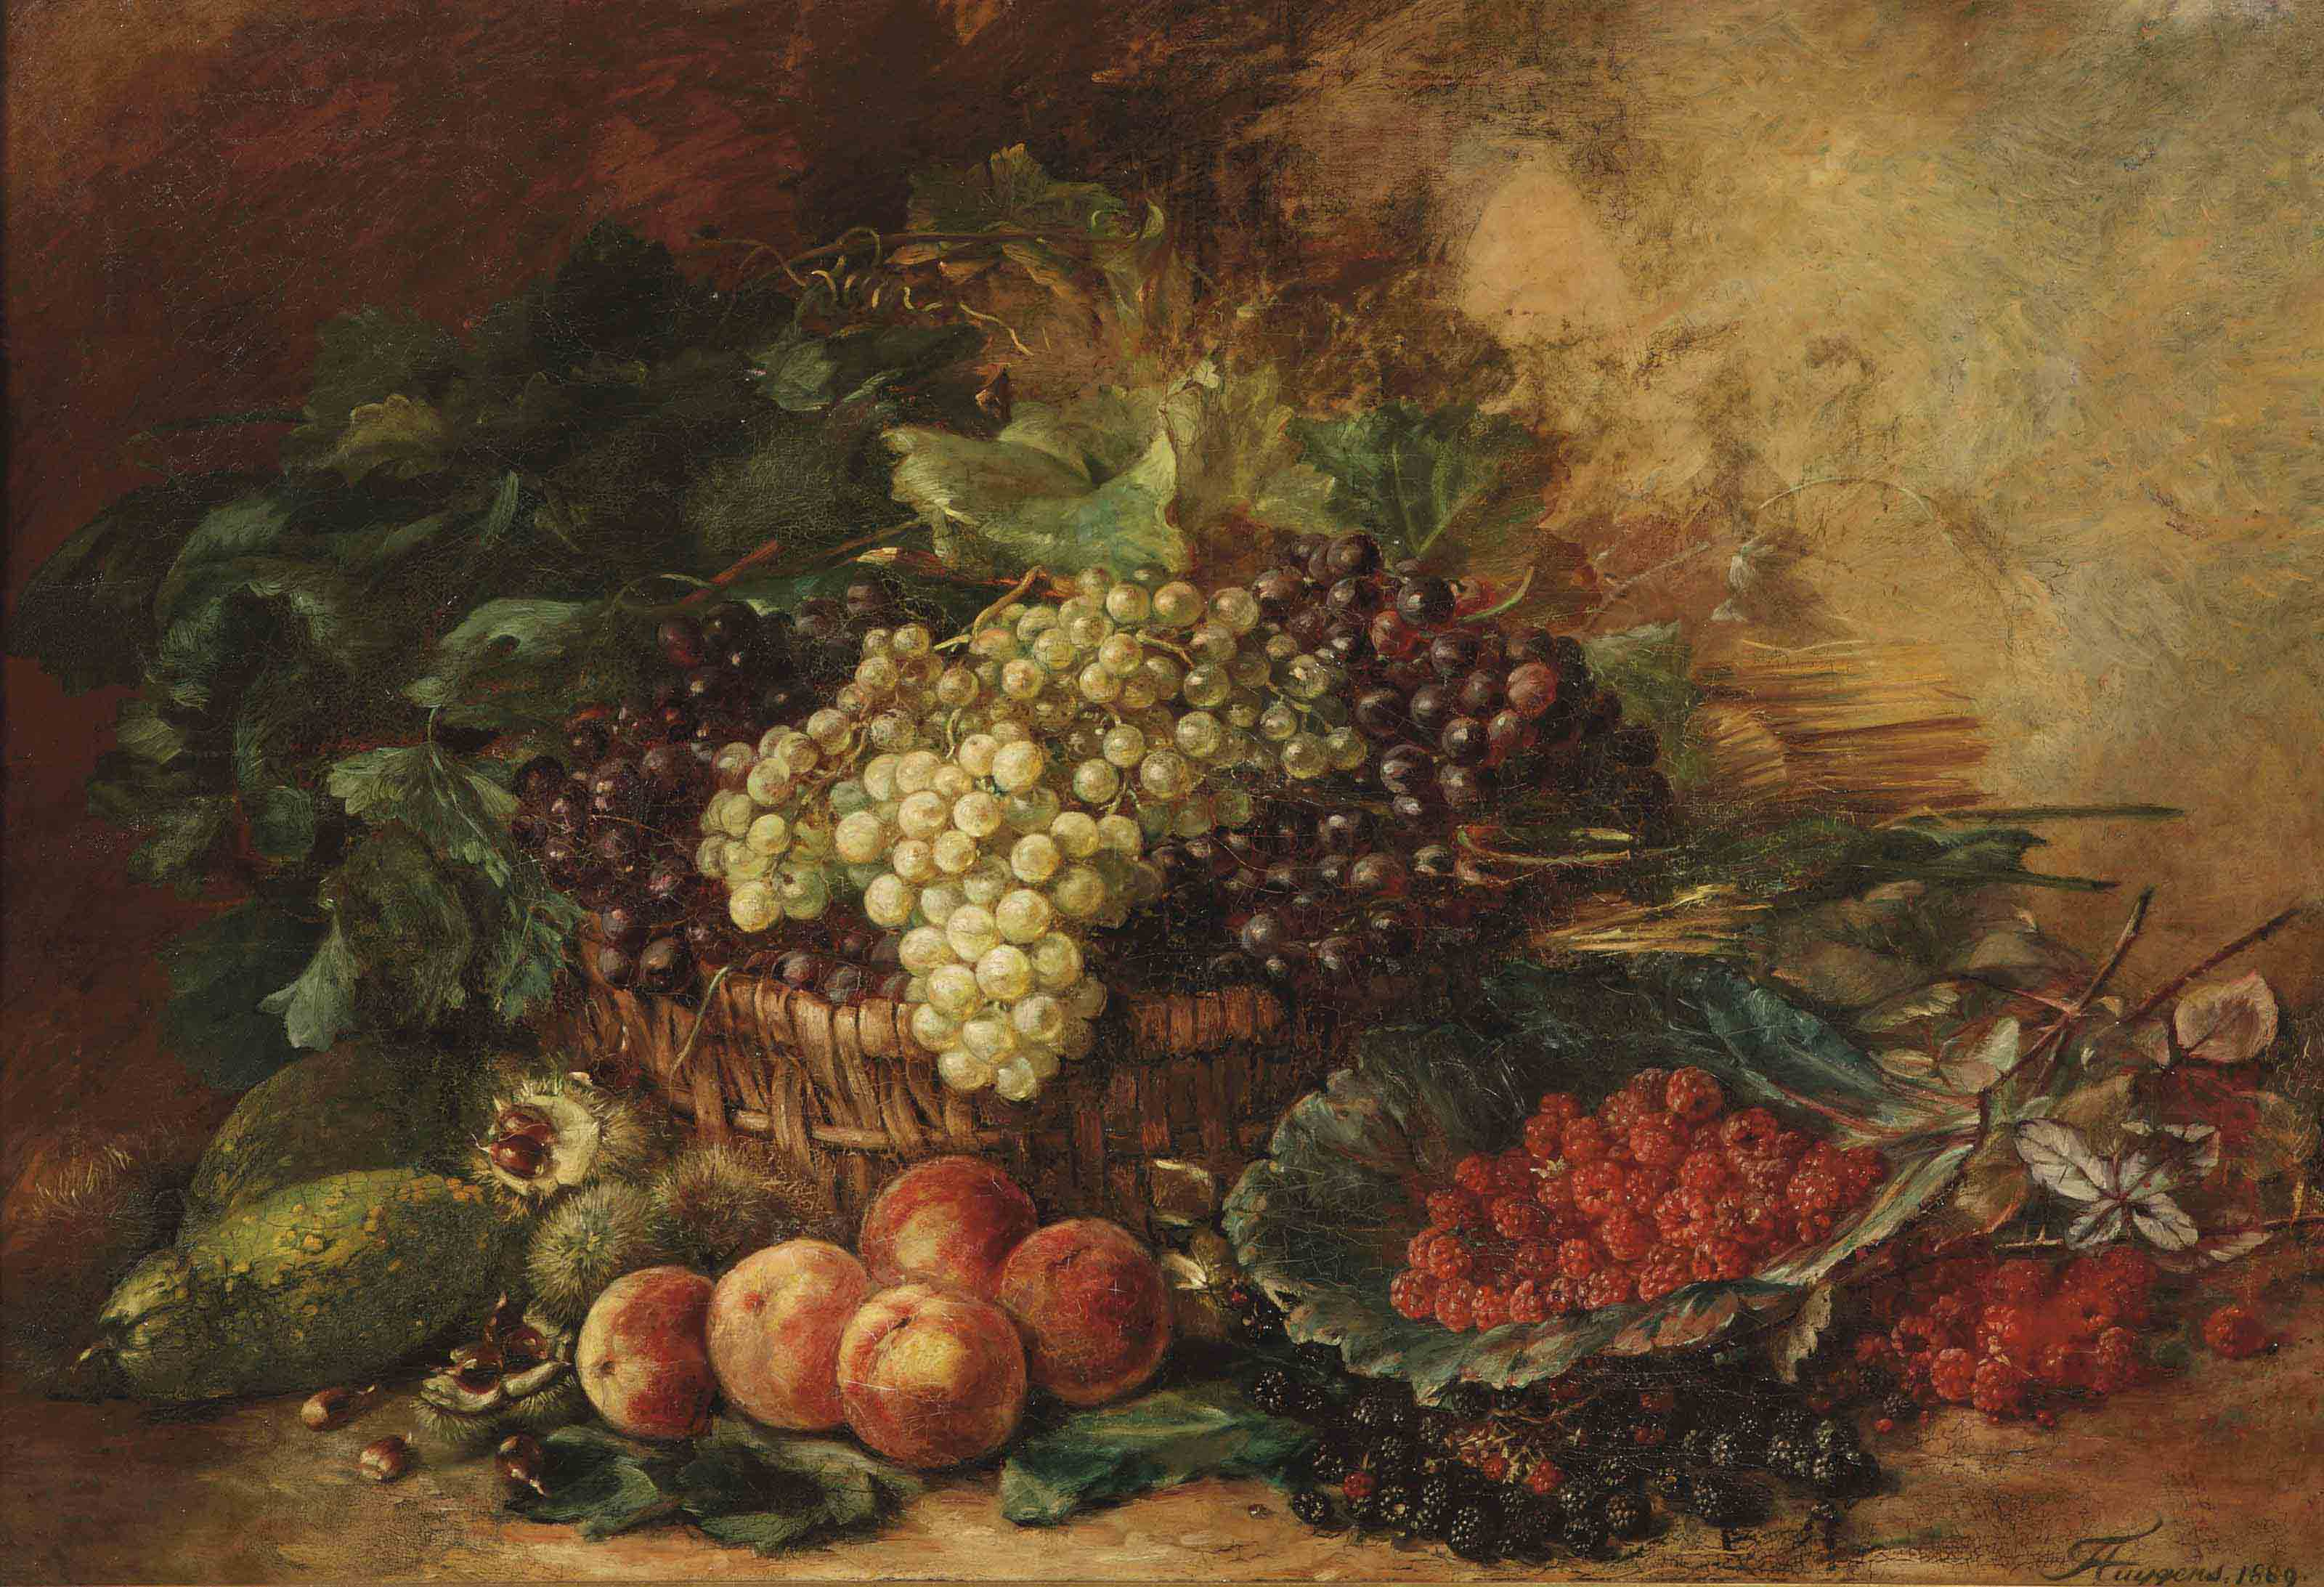 White and black grapes in a wicker basket, surrounded by gourds, chestnuts, peaches, raspberries and blackberries